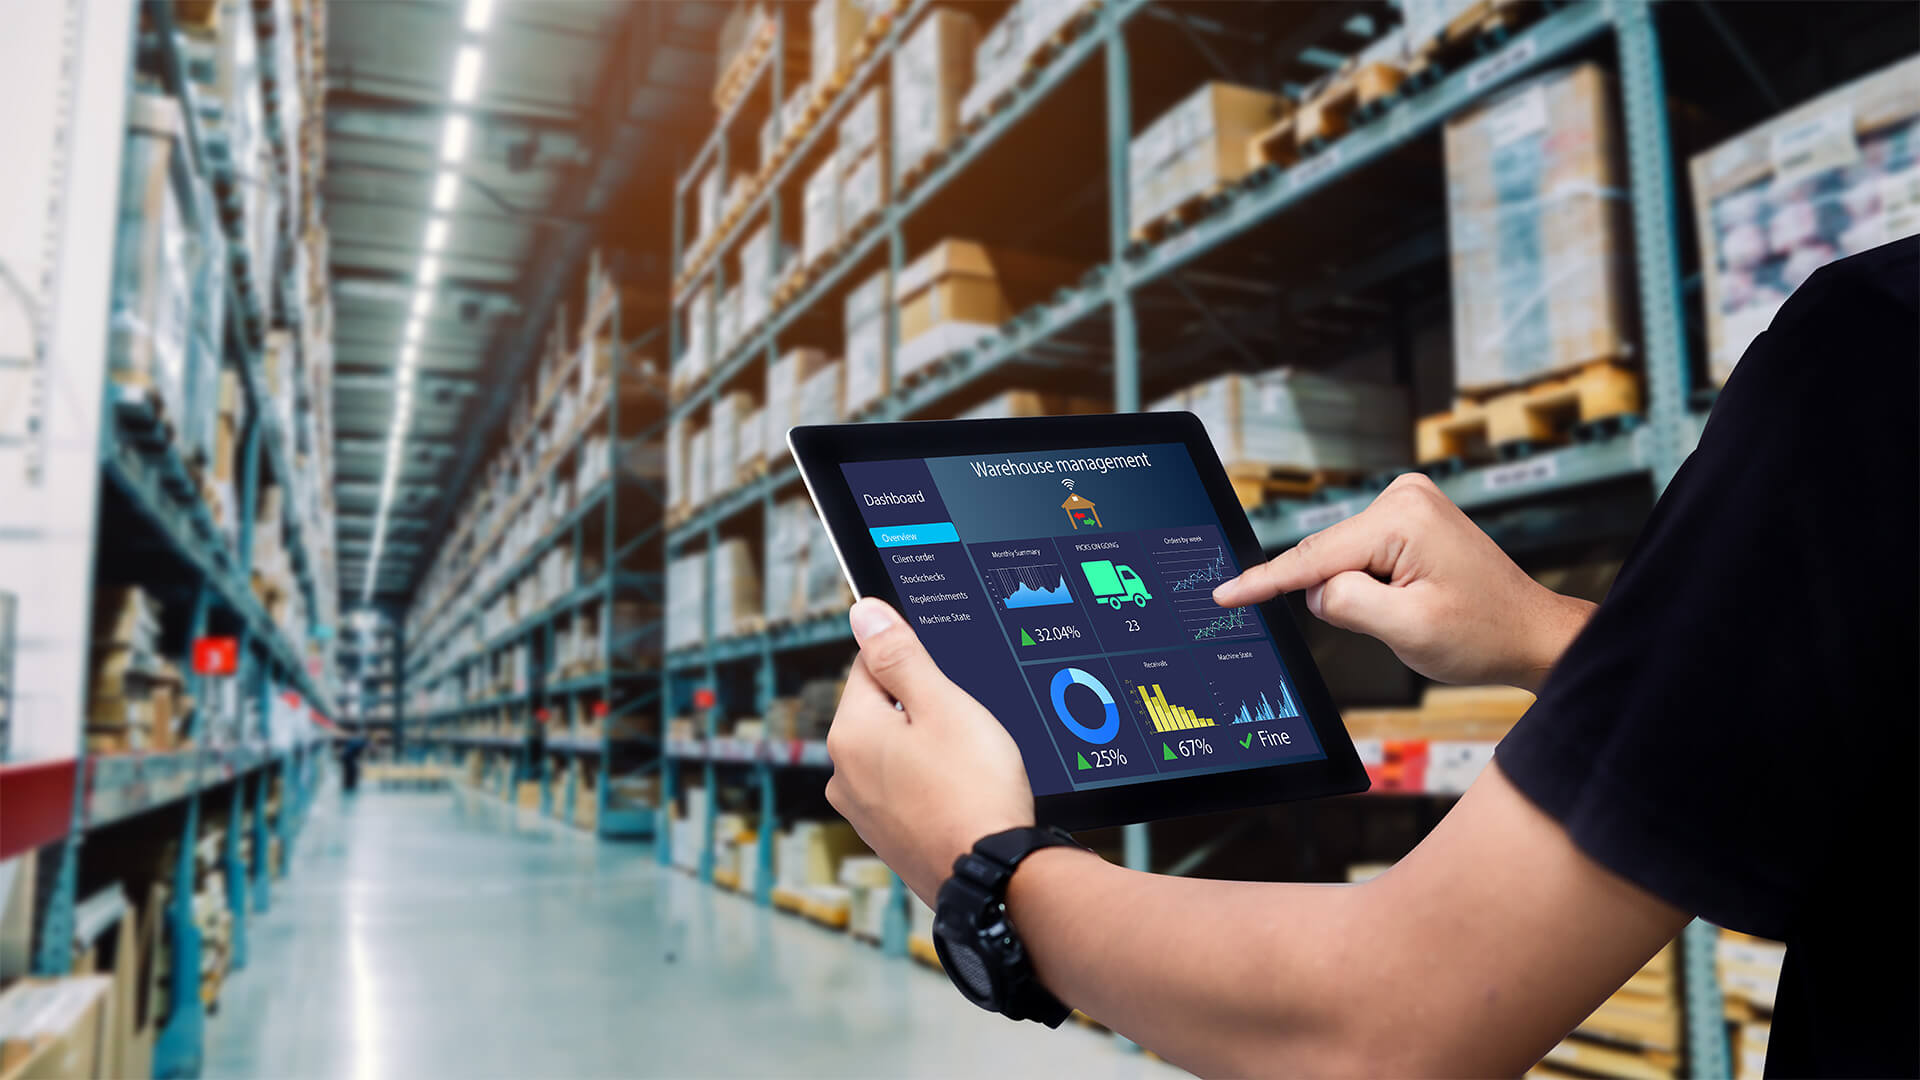 Parcel Delivery Optimization with Agile-based Product Management for a Leading Consumer Delivery Specialist